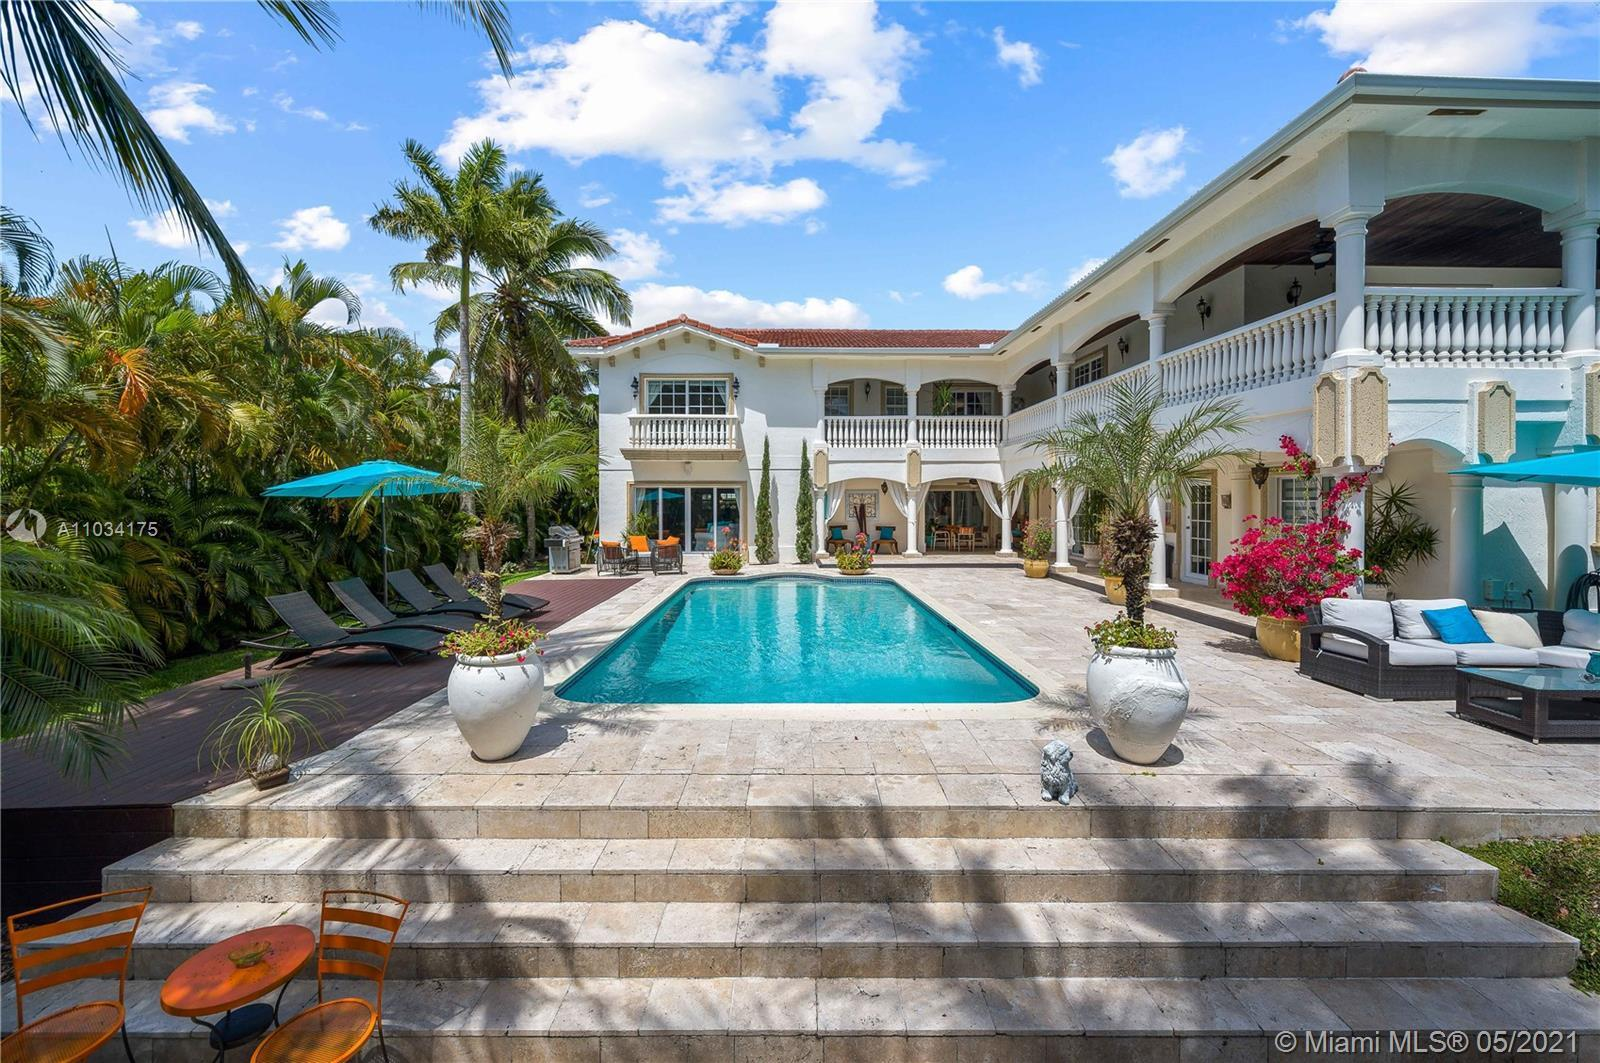 TWO STORY WATERFRONT RESIDENCE IN DESIRABLE GOLDEN ISLES WITH 100 FT. OF DEEP WATER FRONTAGE. BOATER